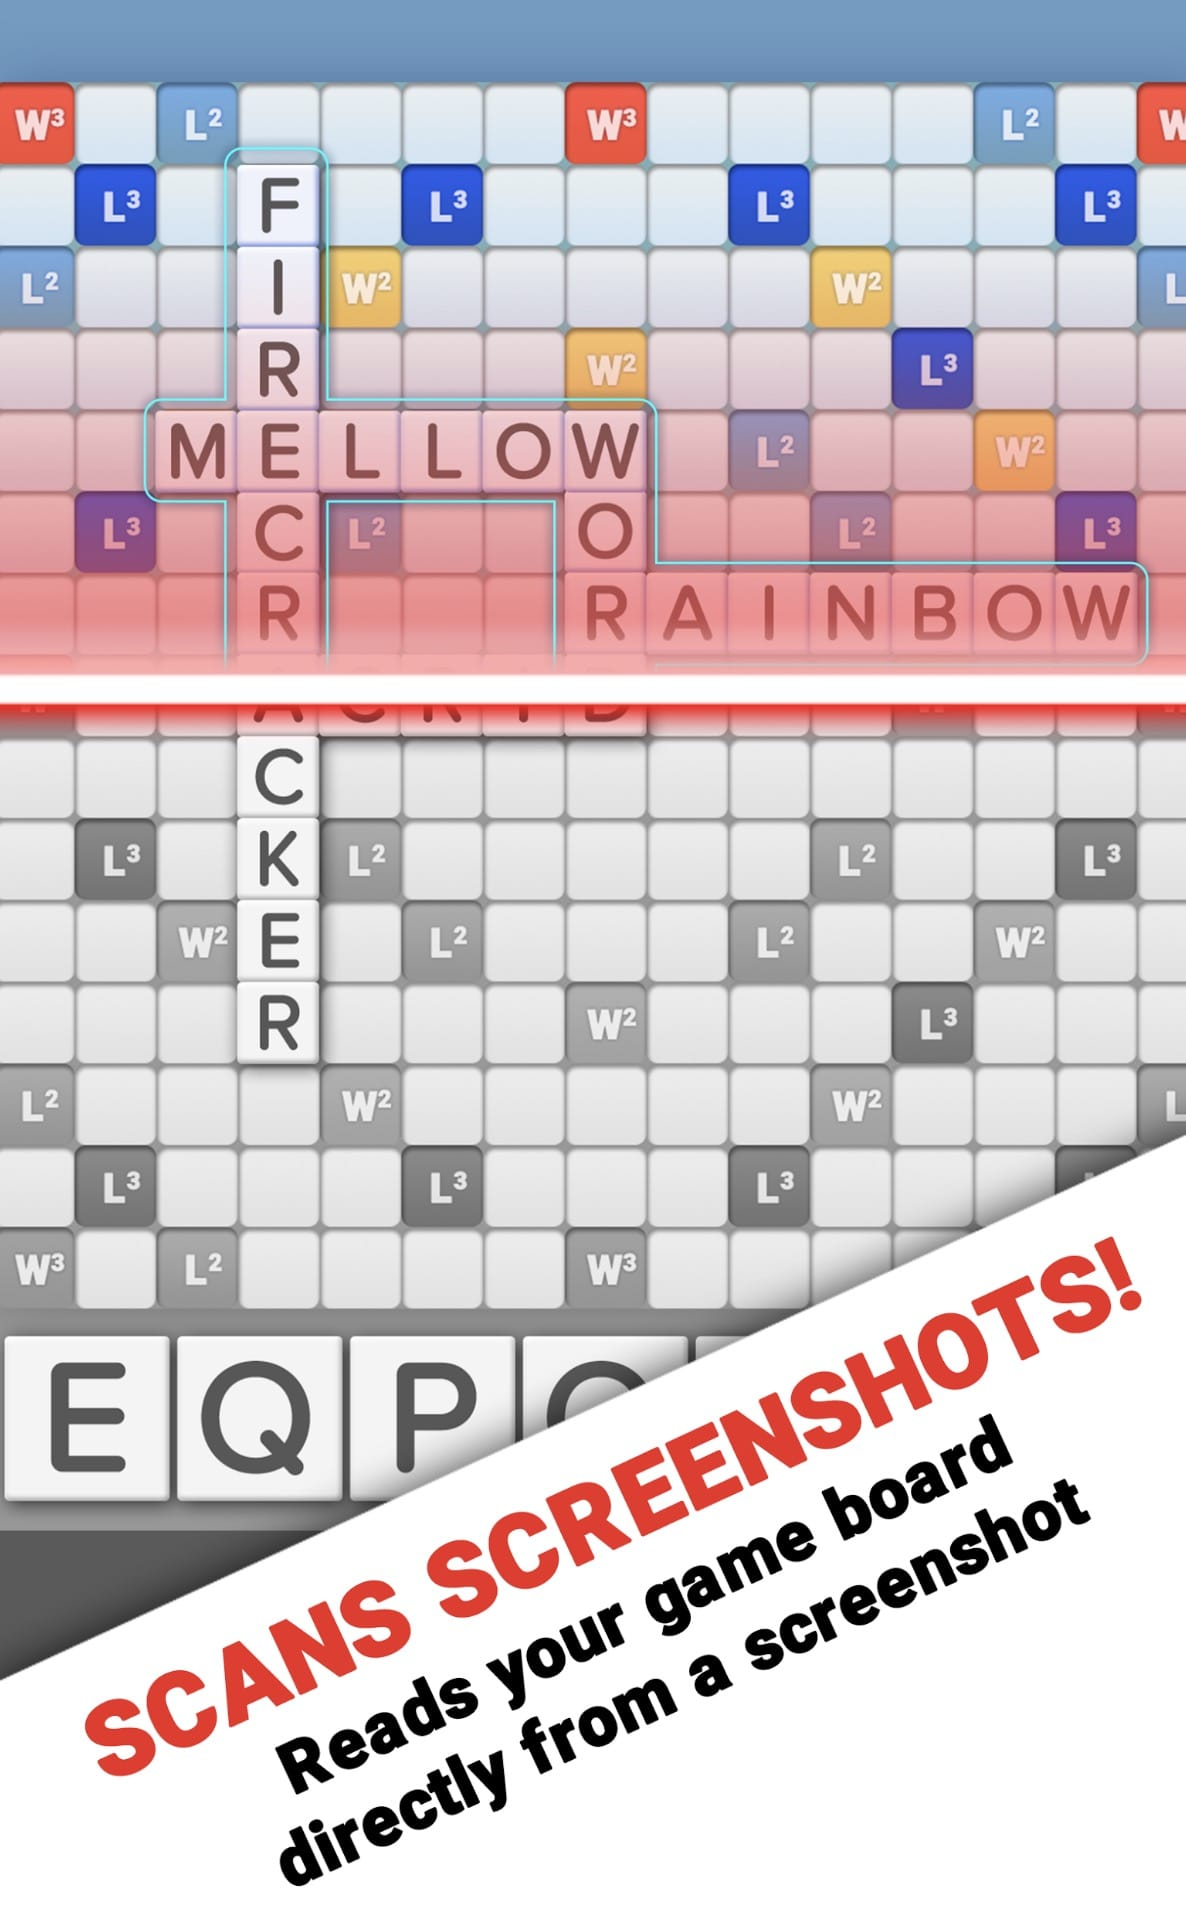 screen shot snap cheats a wwf android app for cheating